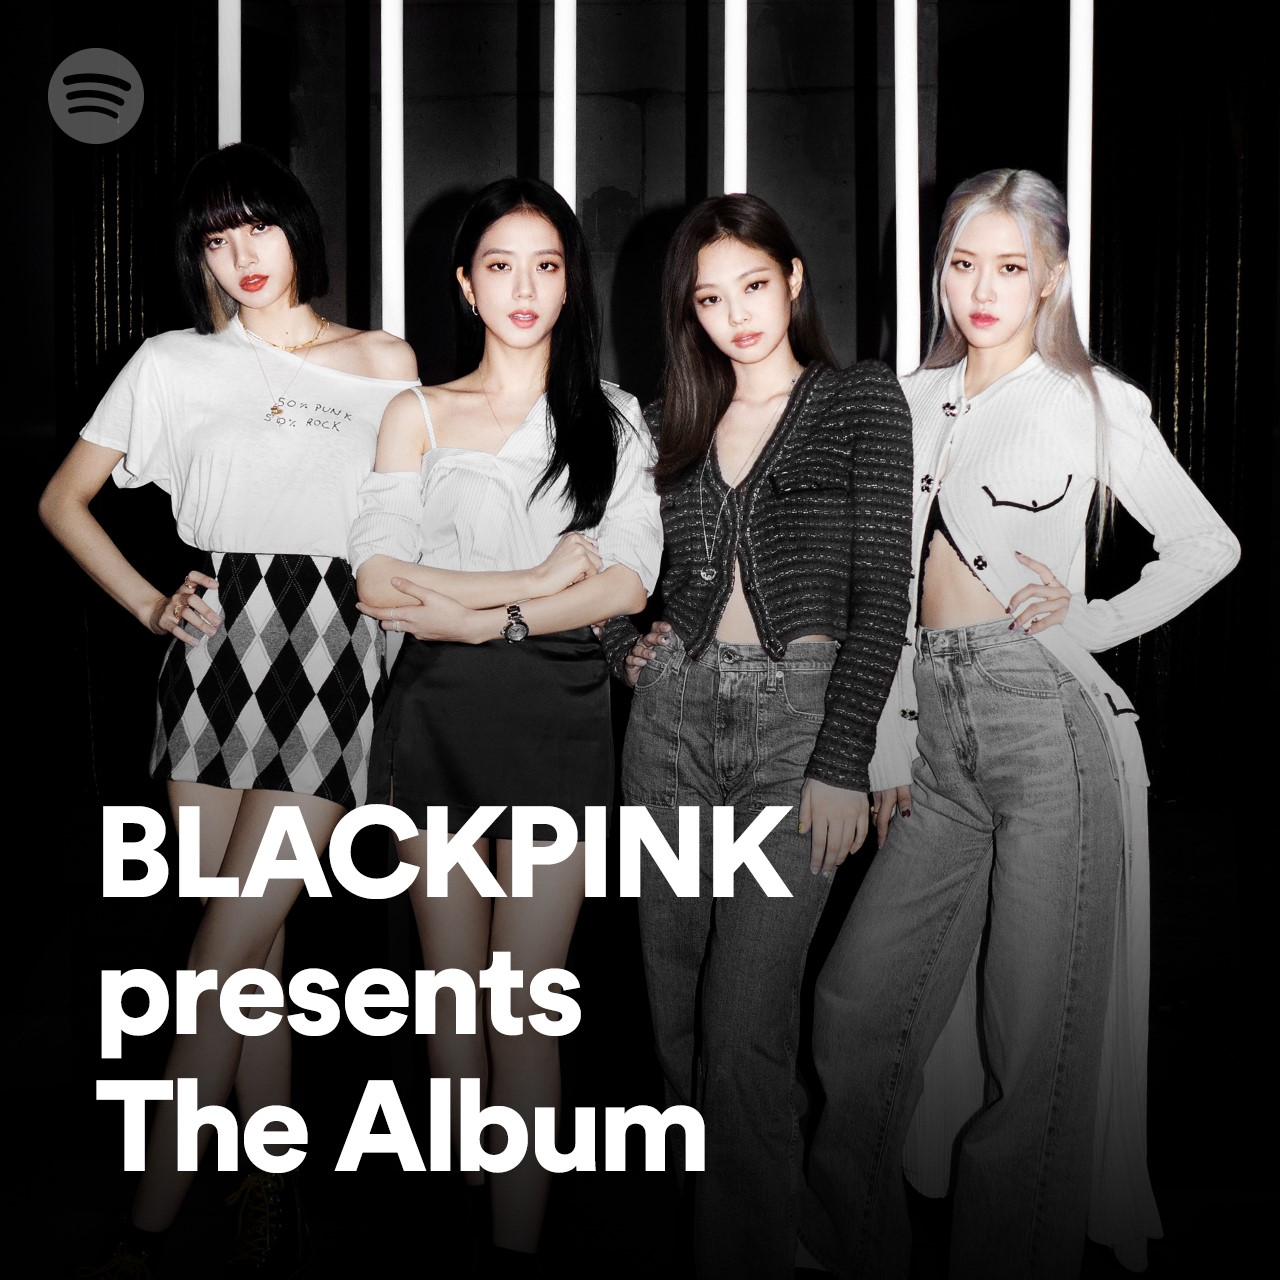 BLACKPINK's Spotify recommendations